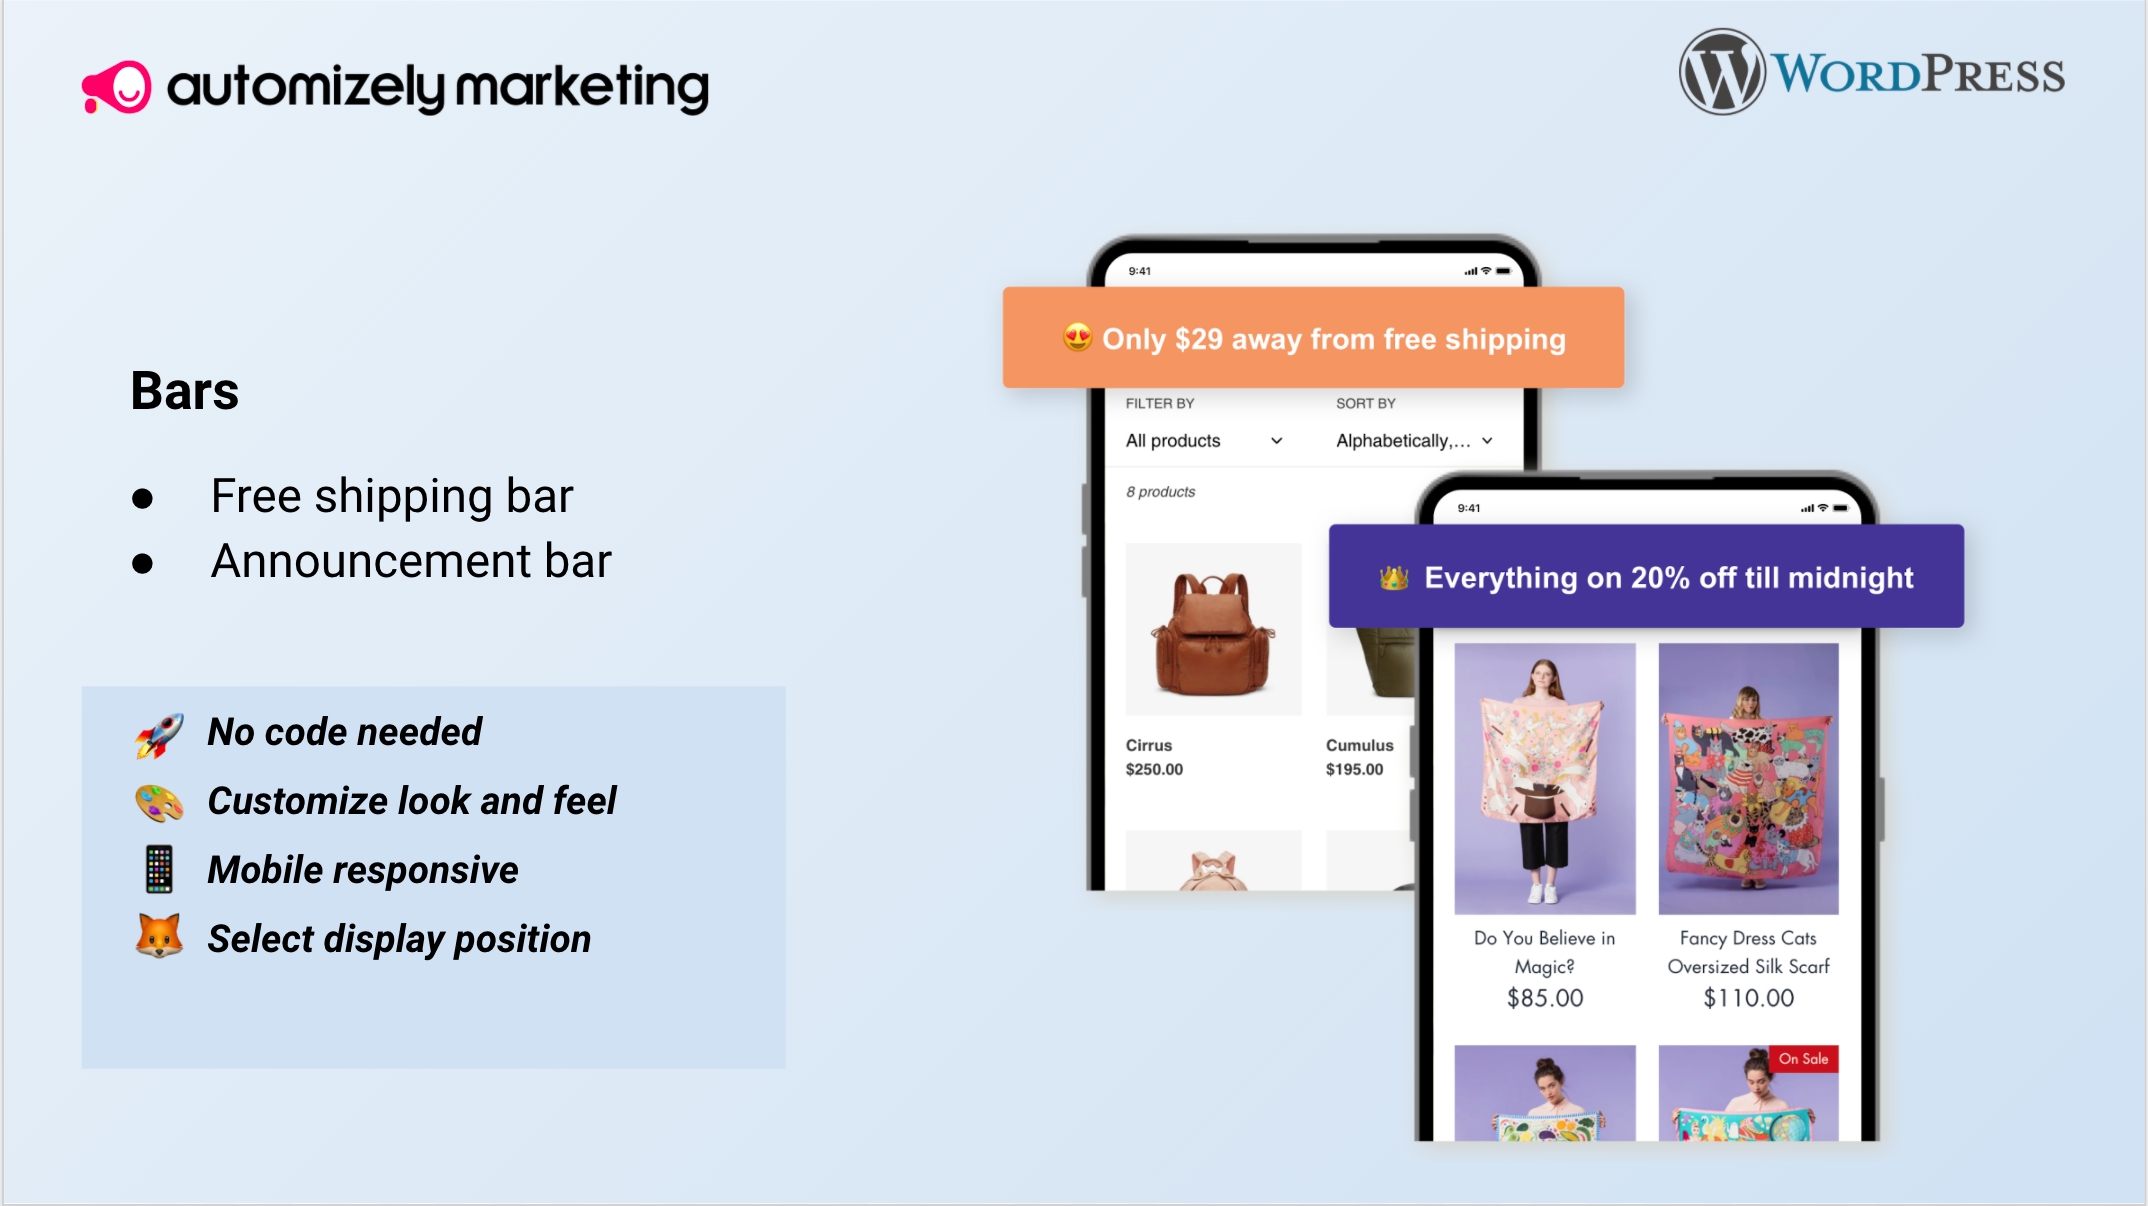 Automizely Popup – Email Pop Up, Sales Pop Up, Exit Intent Pop Up, Upsell Pop Up, Cart Abandonment Pop Up